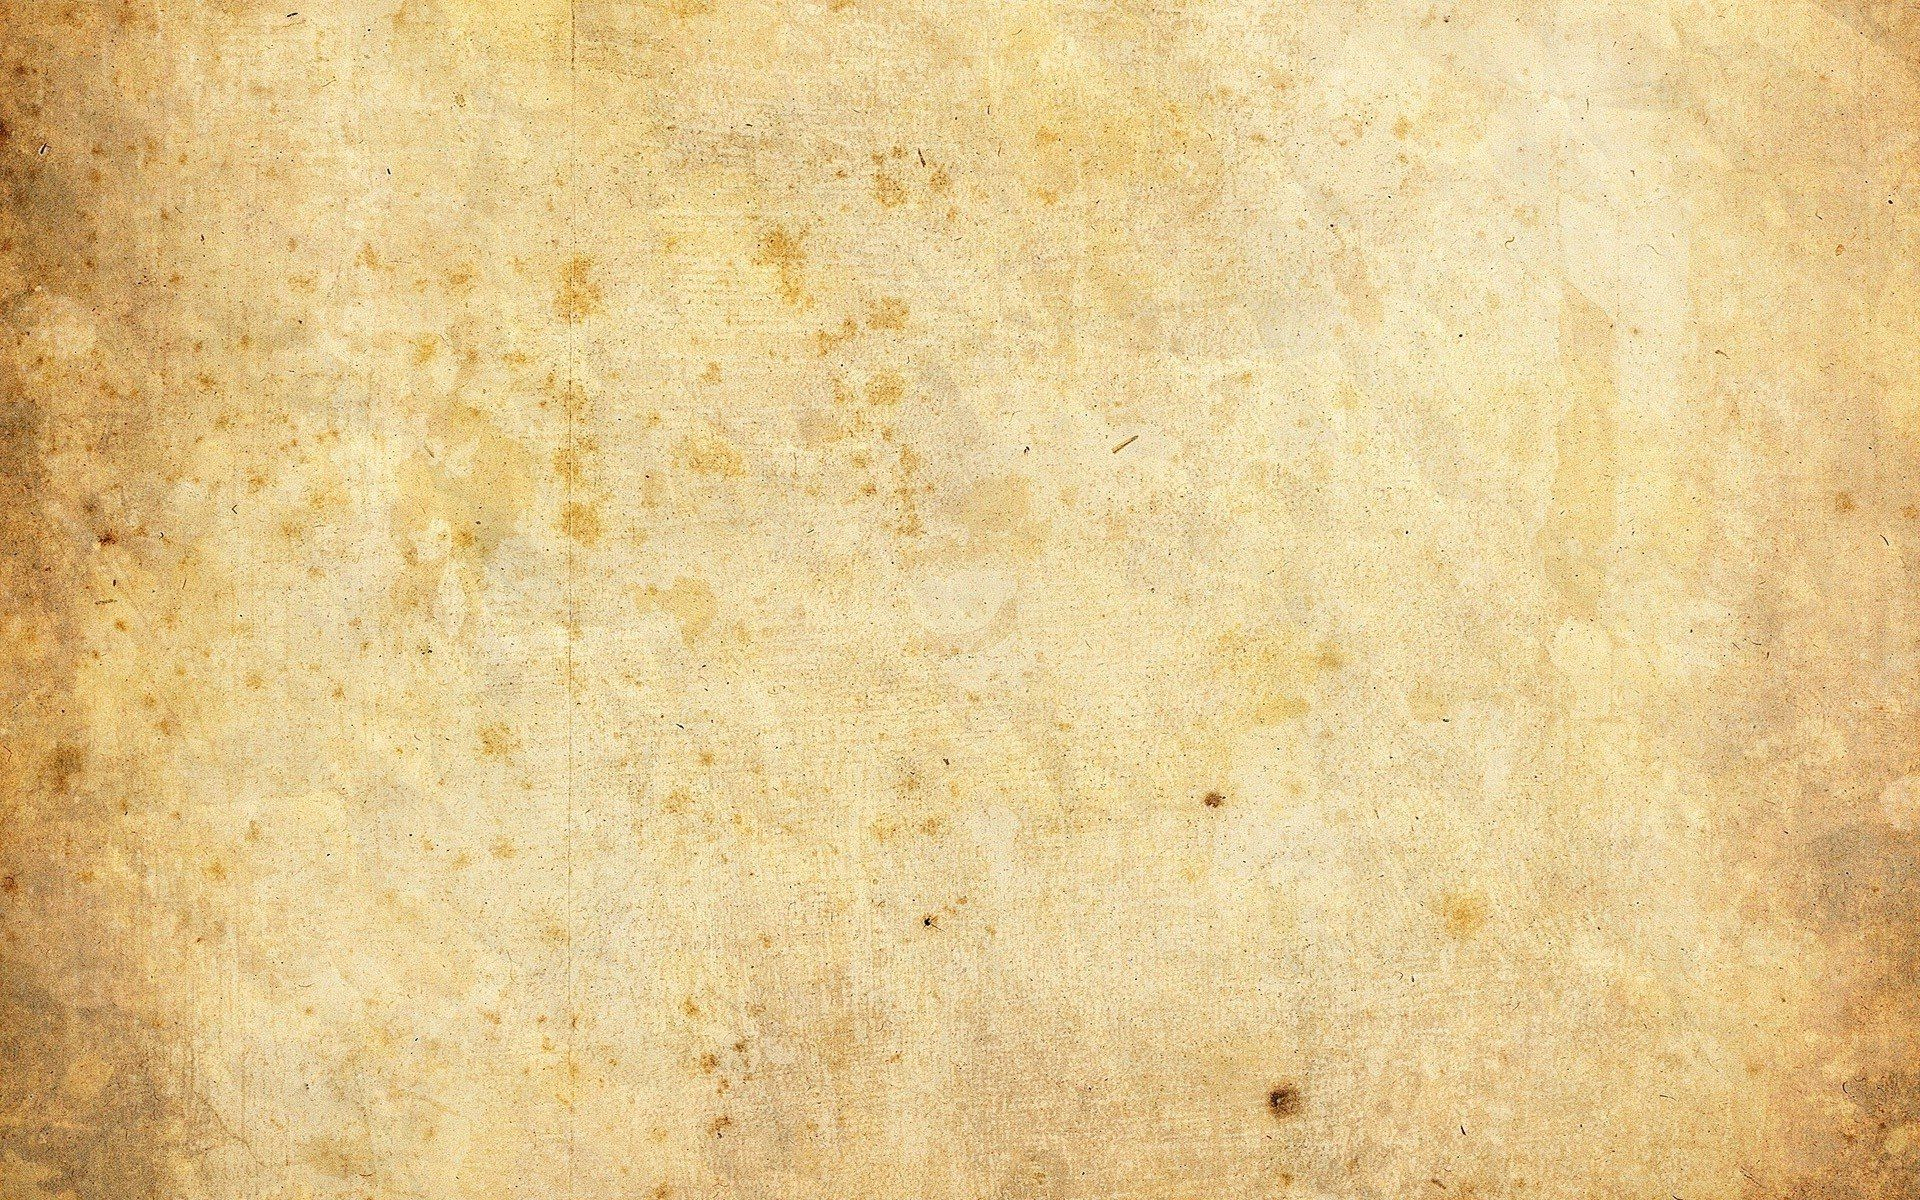 Old Paper Texture Wallpapers - Top Free Old Paper Texture Backgrounds -  WallpaperAccess